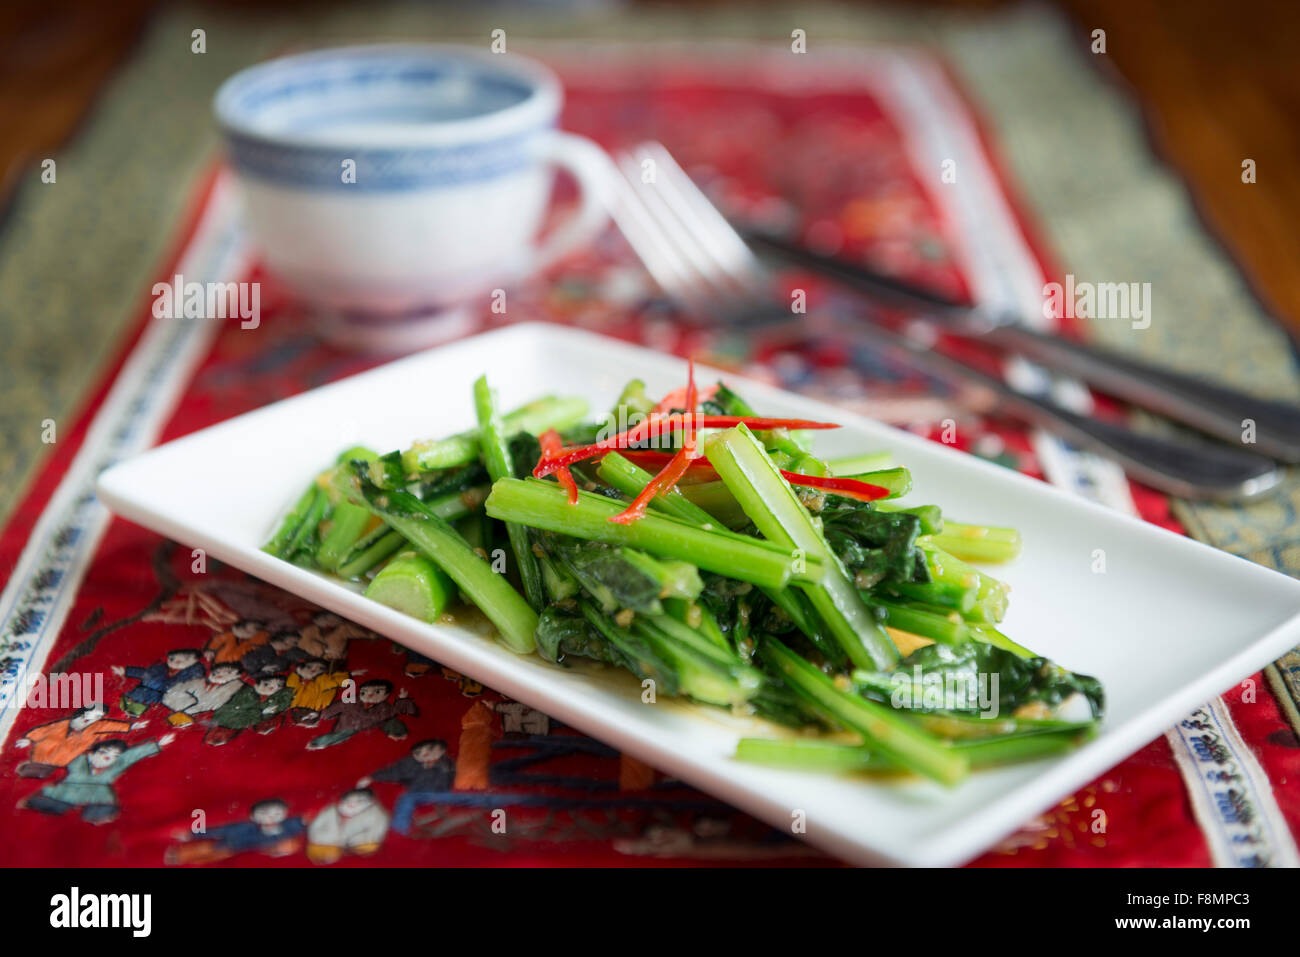 Singapore cuisine served in a restaurant - Stock Image